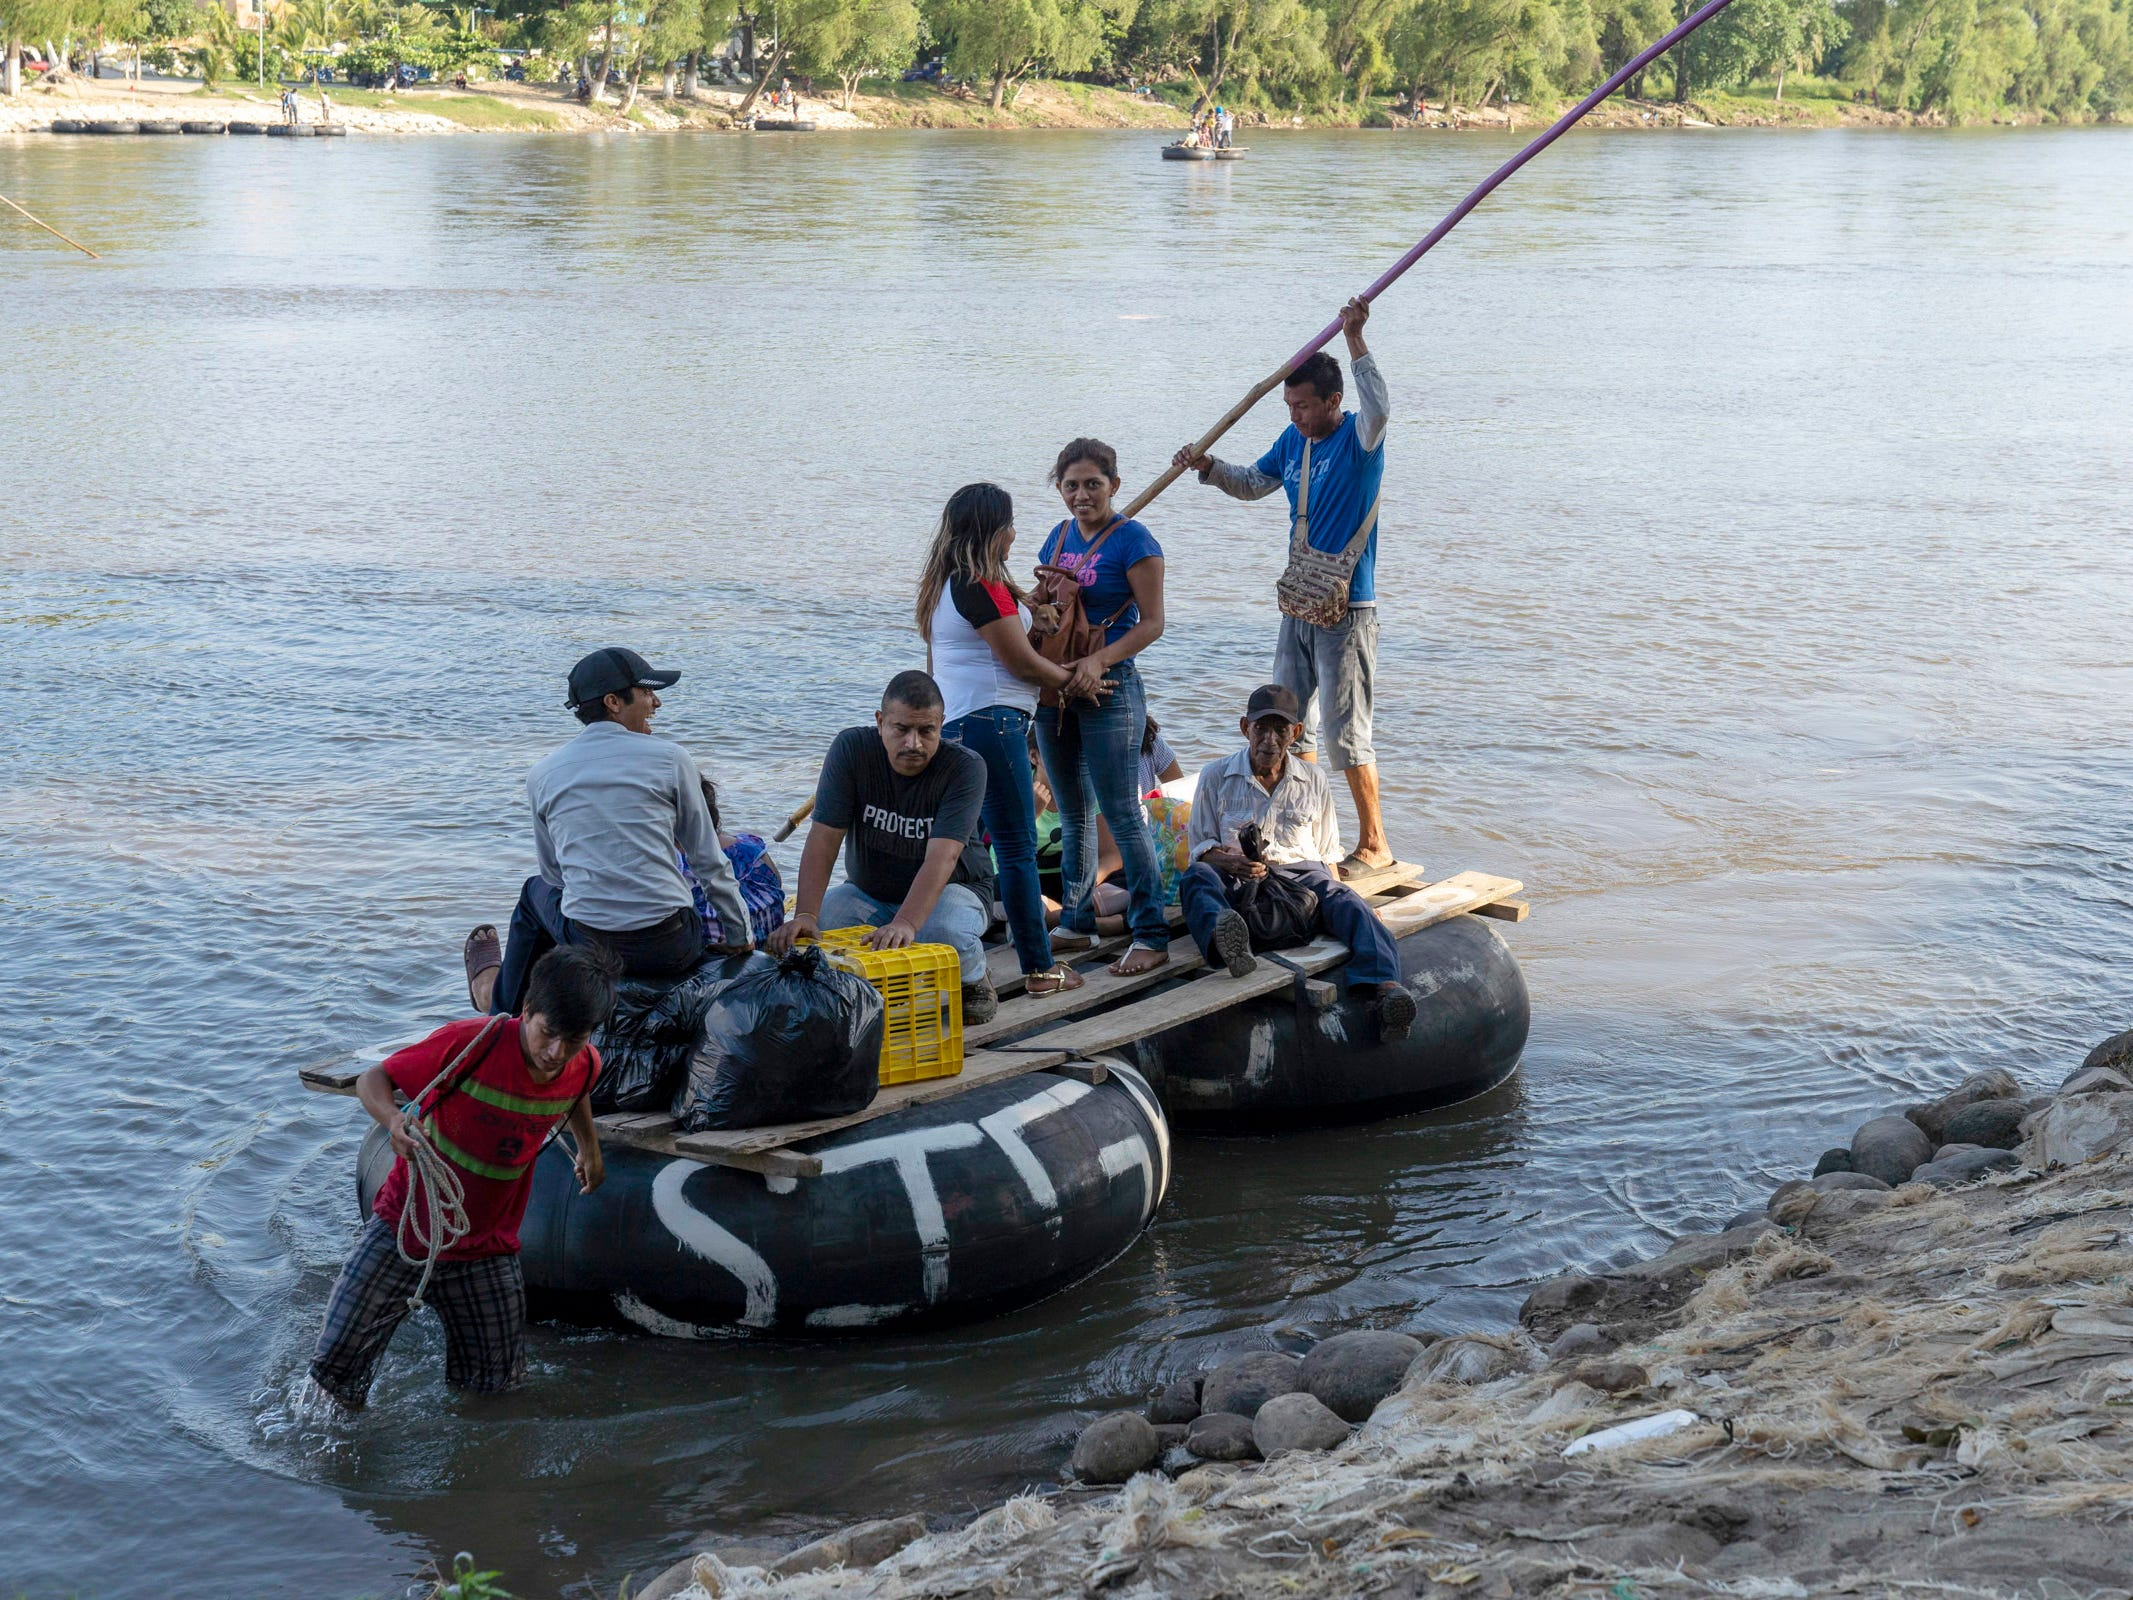 Border crossers from Guatemala, use a raft at cross the border into Mexico at Cuidad Hidalgo on Oct. 25, 2018.